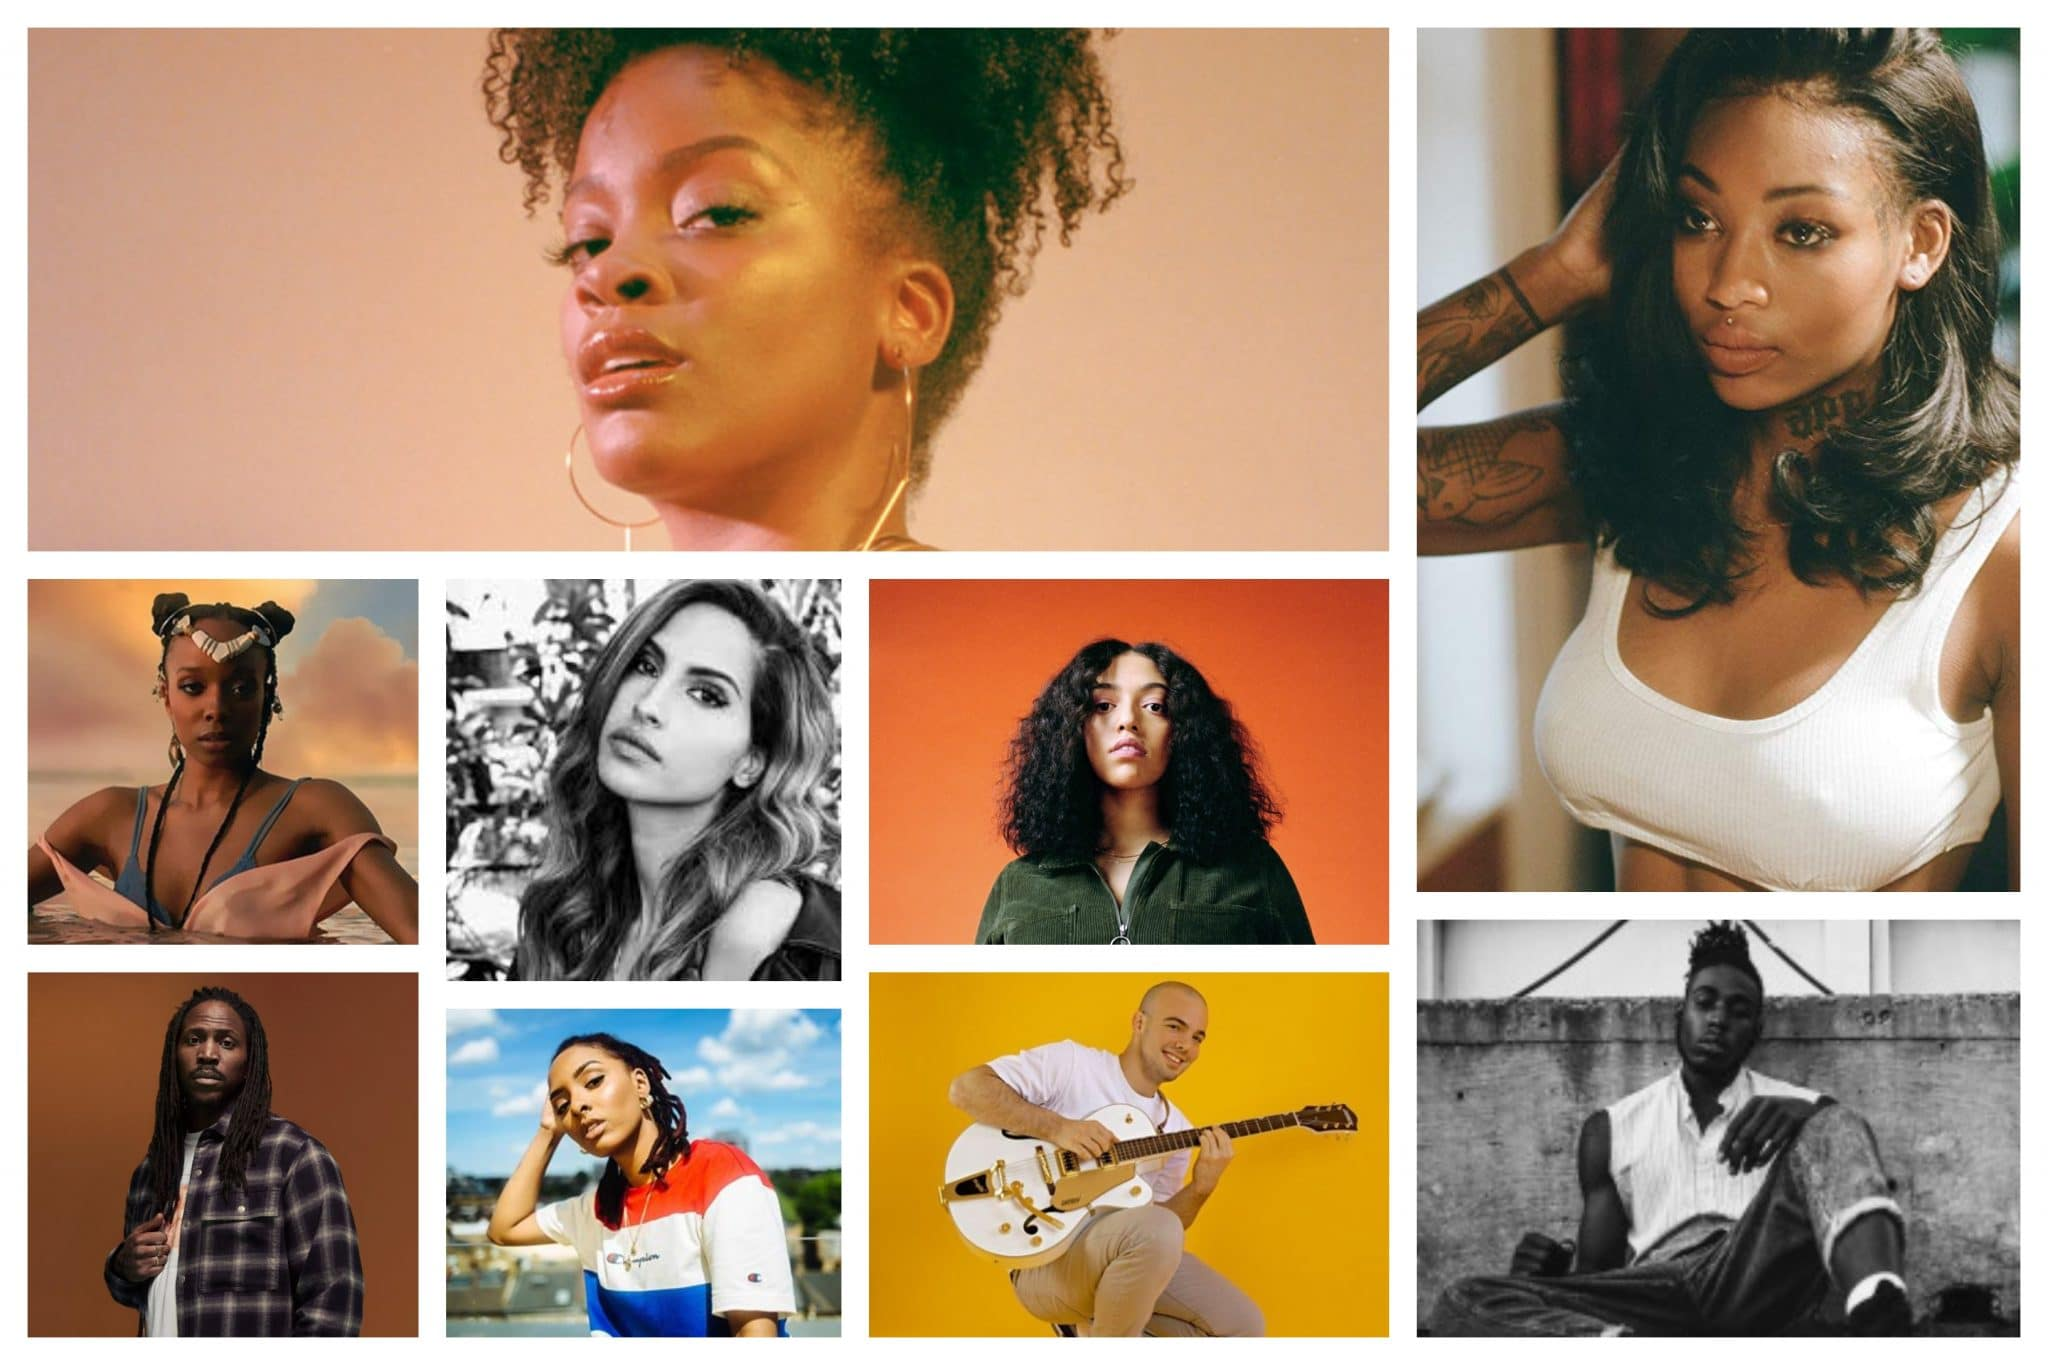 The 50 Best R&B Soul Songs of 2019 - Ari Lennox, Summer Walker, Jamila Woods, Snoh Aalegra, Mahalia, SiR, Layfullstop, Mac Ayres, Jerome Thomas